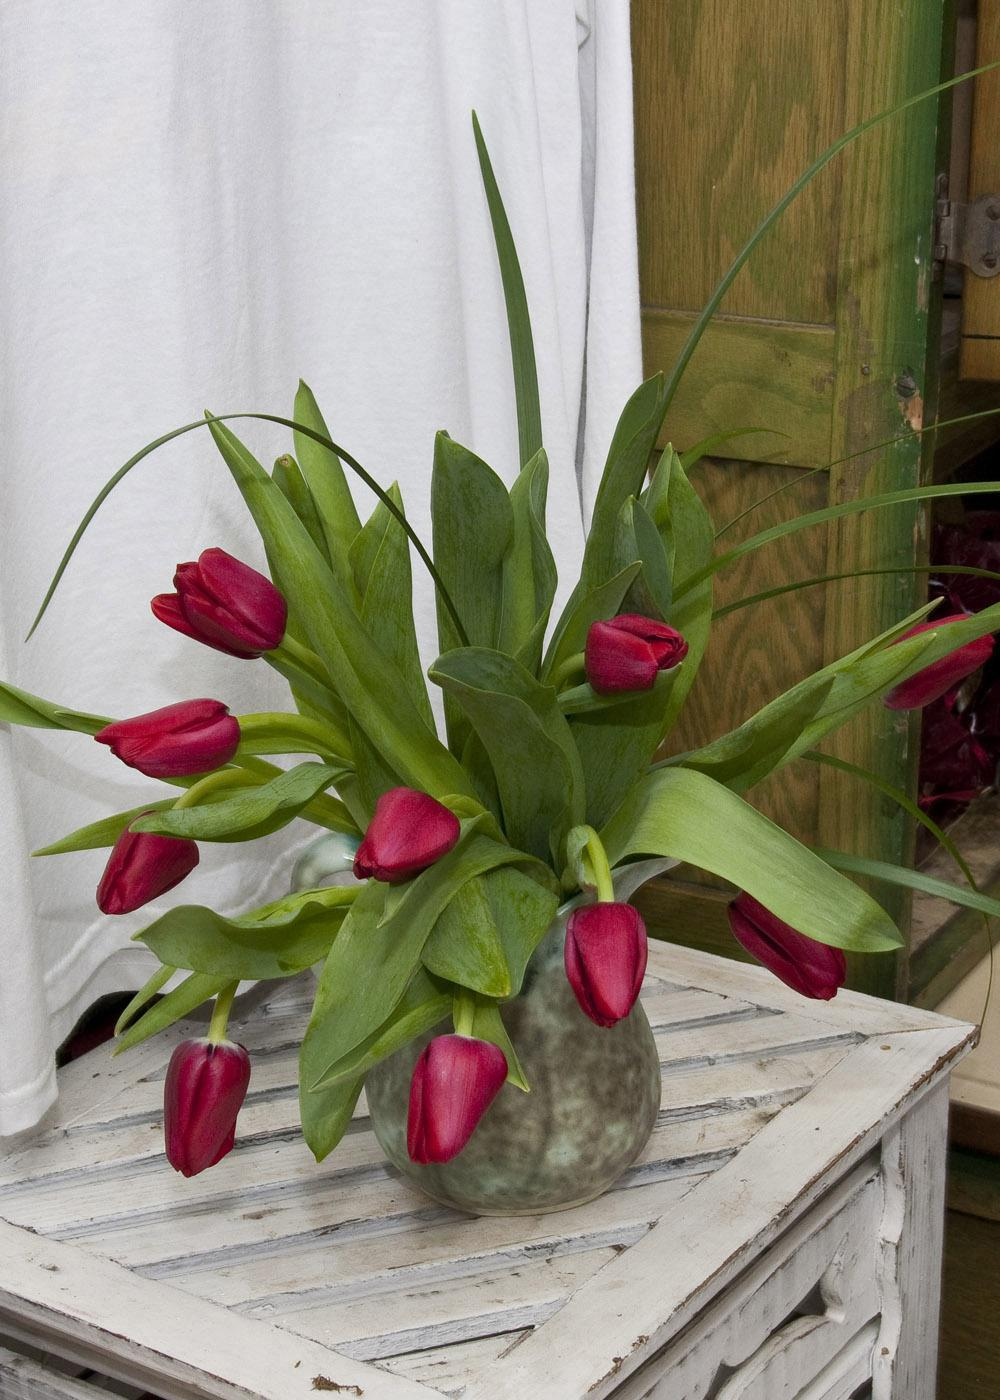 """Savvy gardeners know they can share a message from the heart this Valentine's Day with the flowers they give. Tradition says red tulips tell the recipient, """"I love you."""" (Photo by Scott Corey)"""